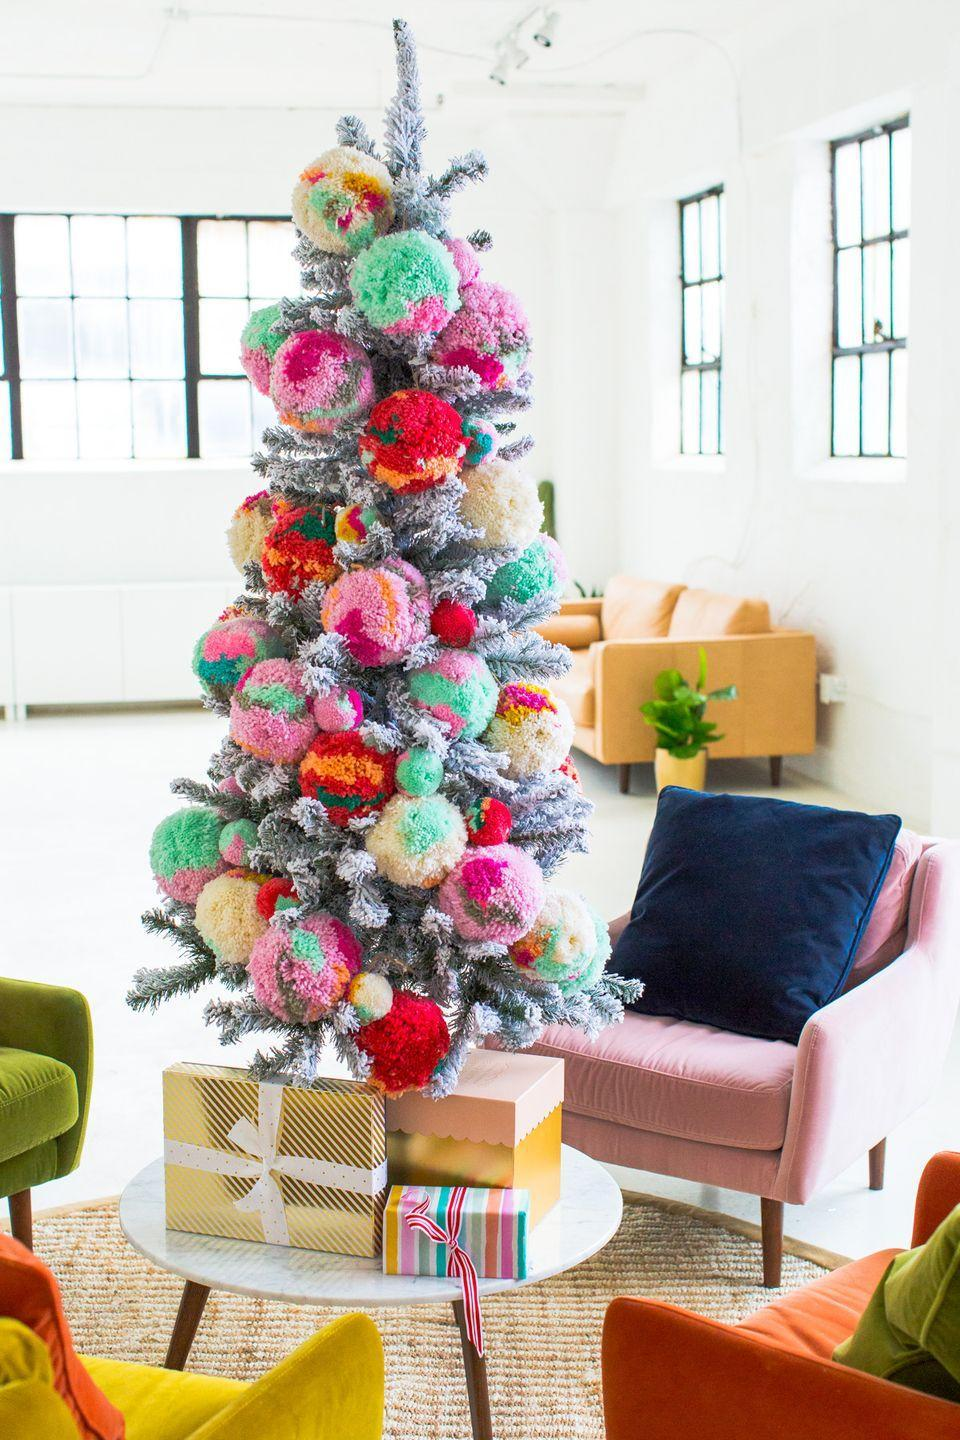 "<p>These pom pom ornaments will make any tree look like it came straight out of Whoville. Make it multi-color or stick with one color throughout.</p><p>See more at <a href=""https://sugarandcloth.com/new-studio-sitting-area-decorated-christmas/"" rel=""nofollow noopener"" target=""_blank"" data-ylk=""slk:Sugar & Cloth"" class=""link rapid-noclick-resp"">Sugar & Cloth</a>.</p><p><a class=""link rapid-noclick-resp"" href=""https://go.redirectingat.com?id=74968X1596630&url=https%3A%2F%2Fwww.etsy.com%2Flisting%2F737879576%2Fchristmas-ornaments-fluffy-pom-pom%3Fga_order%3Dmost_relevant%26ga_search_type%3Dall%26ga_view_type%3Dgallery%26ga_search_query%3DChristmas%2Bpompom%2Bornament%26ref%3Dsr_gallery-1-2%26organic_search_click%3D1%26frs%3D1&sref=https%3A%2F%2Fwww.housebeautiful.com%2Fentertaining%2Fholidays-celebrations%2Ftips%2Fg505%2Fchristmas-tree-decoration-ideas-pictures-1208%2F"" rel=""nofollow noopener"" target=""_blank"" data-ylk=""slk:SHOP ORNAMENTS"">SHOP ORNAMENTS</a> <strong><em>Pom Pom Ornaments (10), $45</em></strong><br></p>"